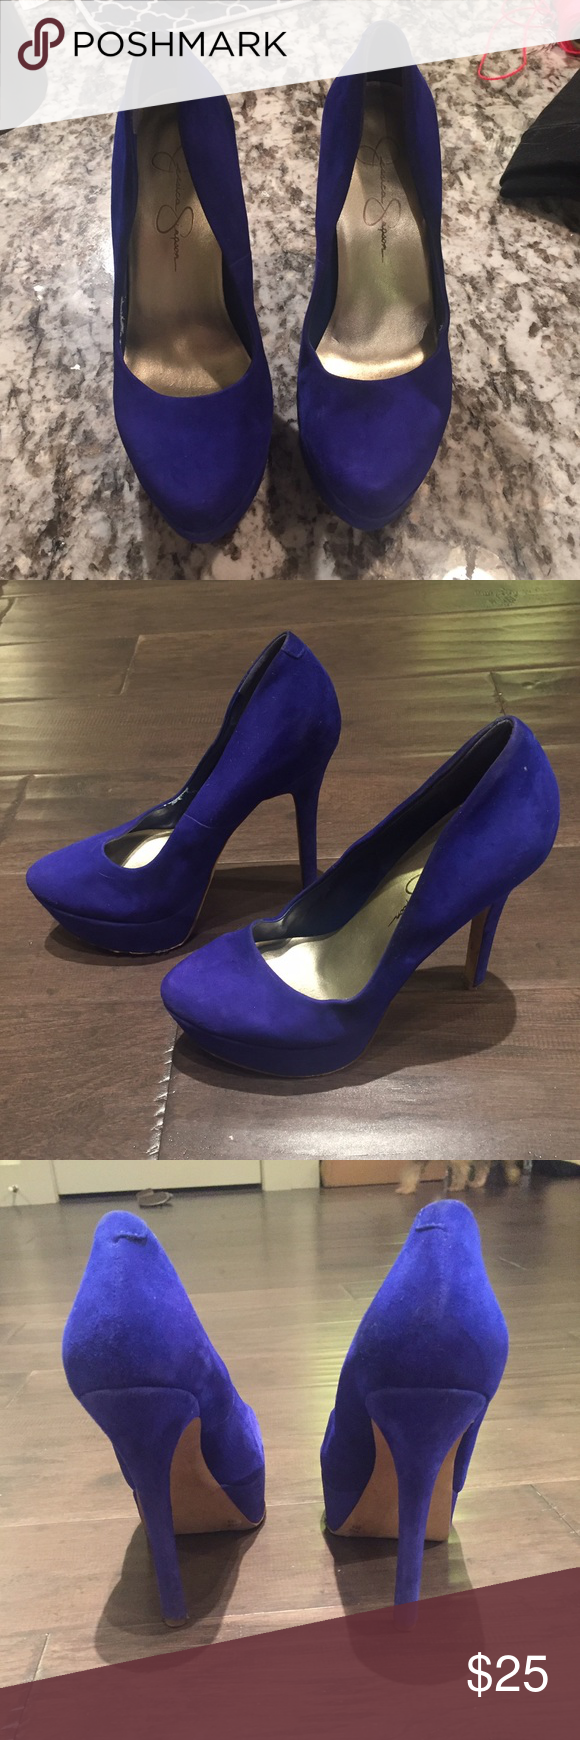 Royal Blue Jessica Simpson Pumps These Royal blue pumps are fab and fun! Worn once and are in great condition. One small scuff on button of shoe near sole- not seen when worn. Velvety material. Jessica Simpson Shoes Heels